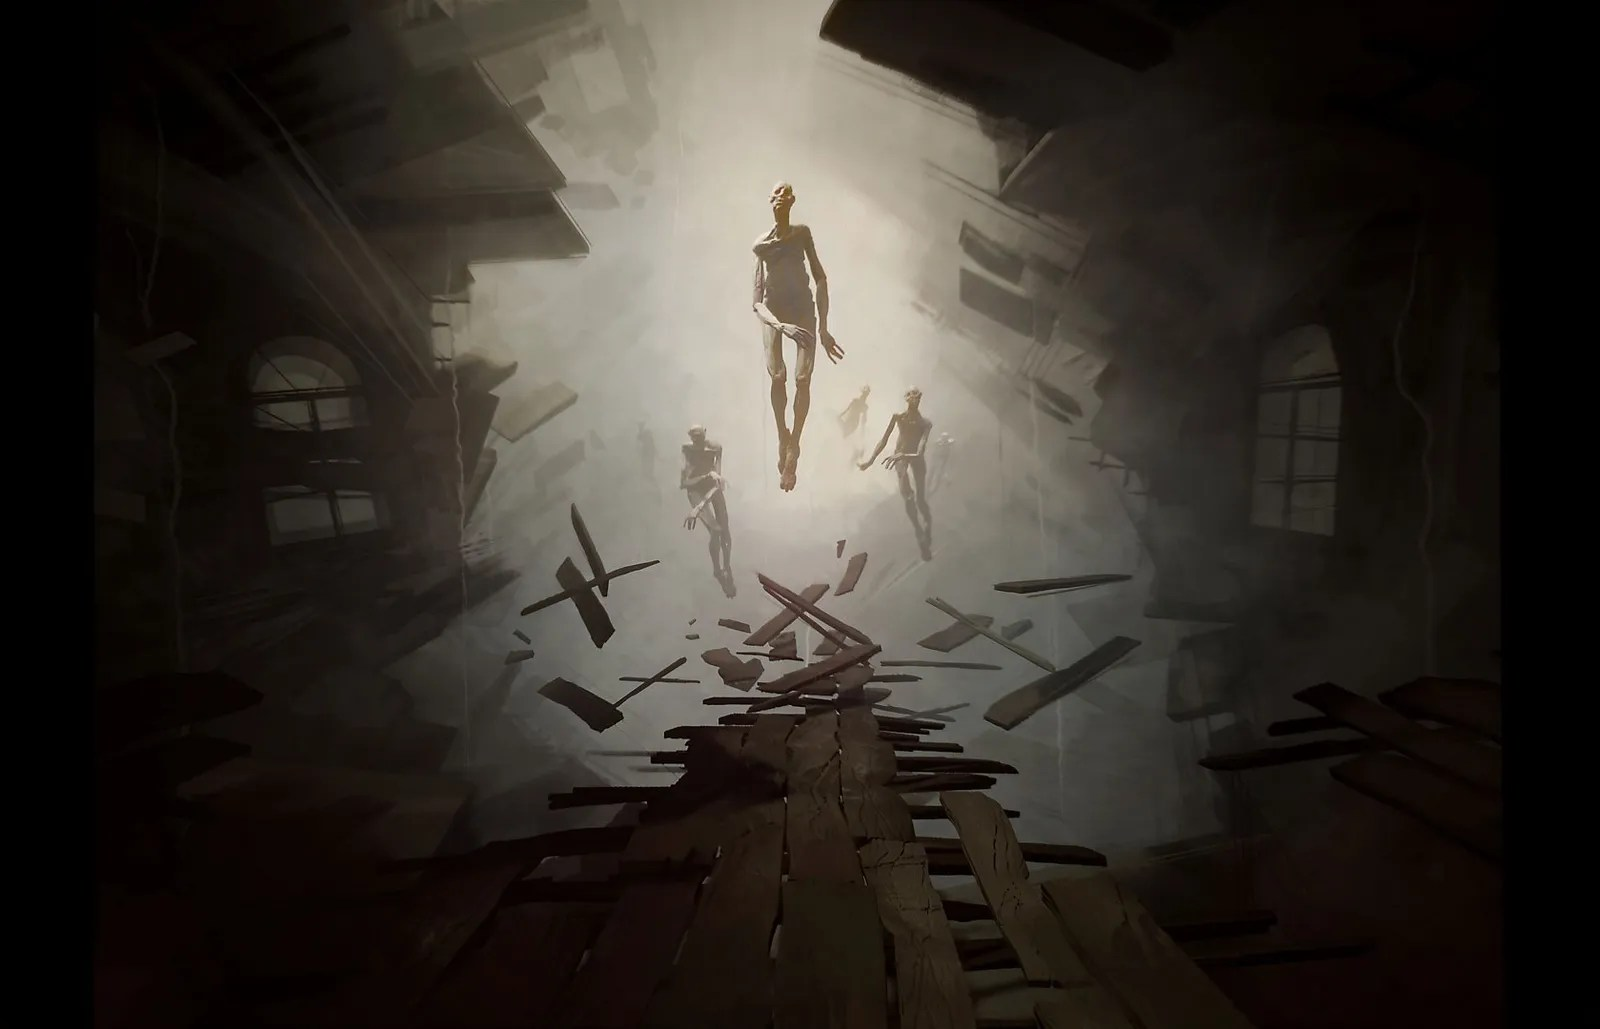 Three skeletal figures float in a dimly lit tunnel with wooden structures.